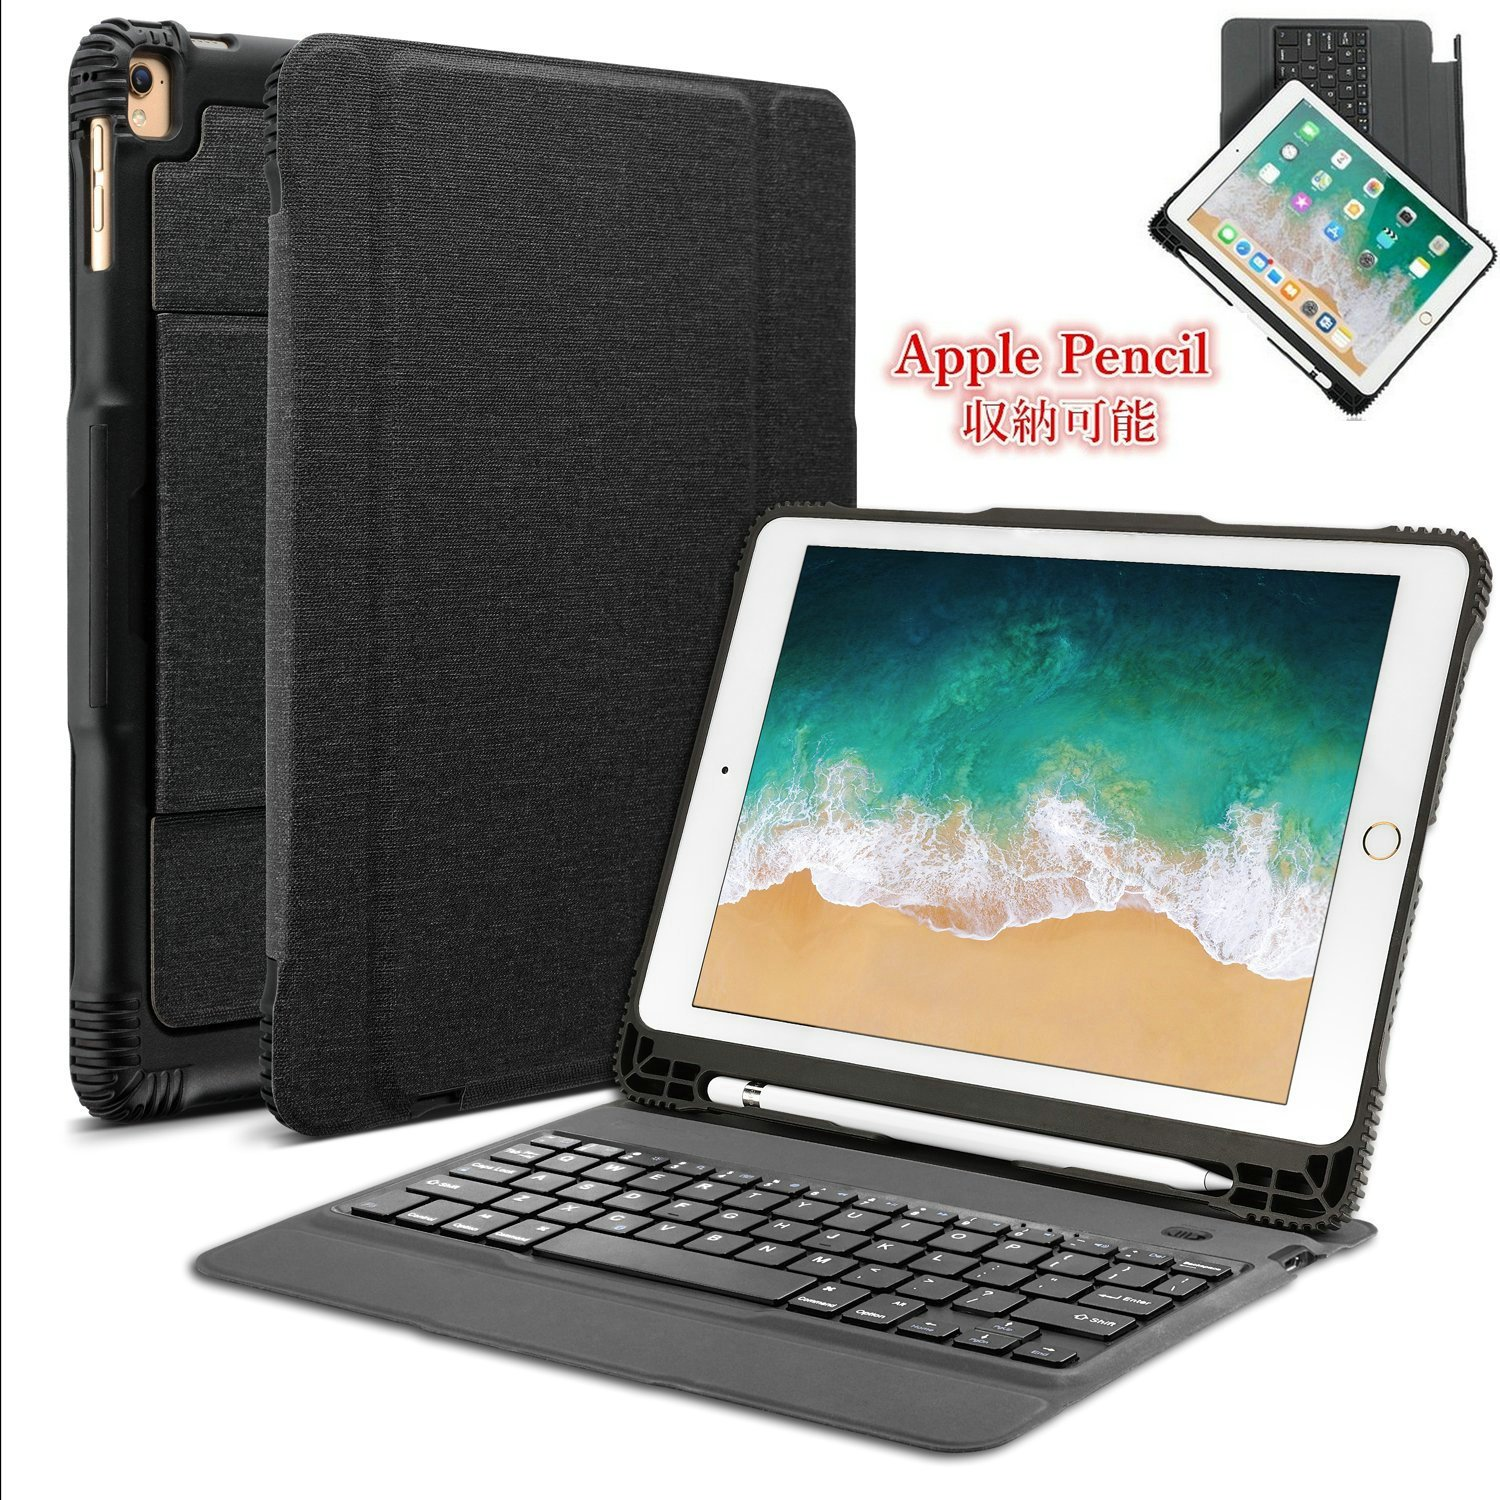 iPad Pro 10.5 Keyboard Case with Built-in Apple Pencil Holder,Business Slim Folio Protective Cover with Bluetooth Connector for iPad Pro 10.5 ...